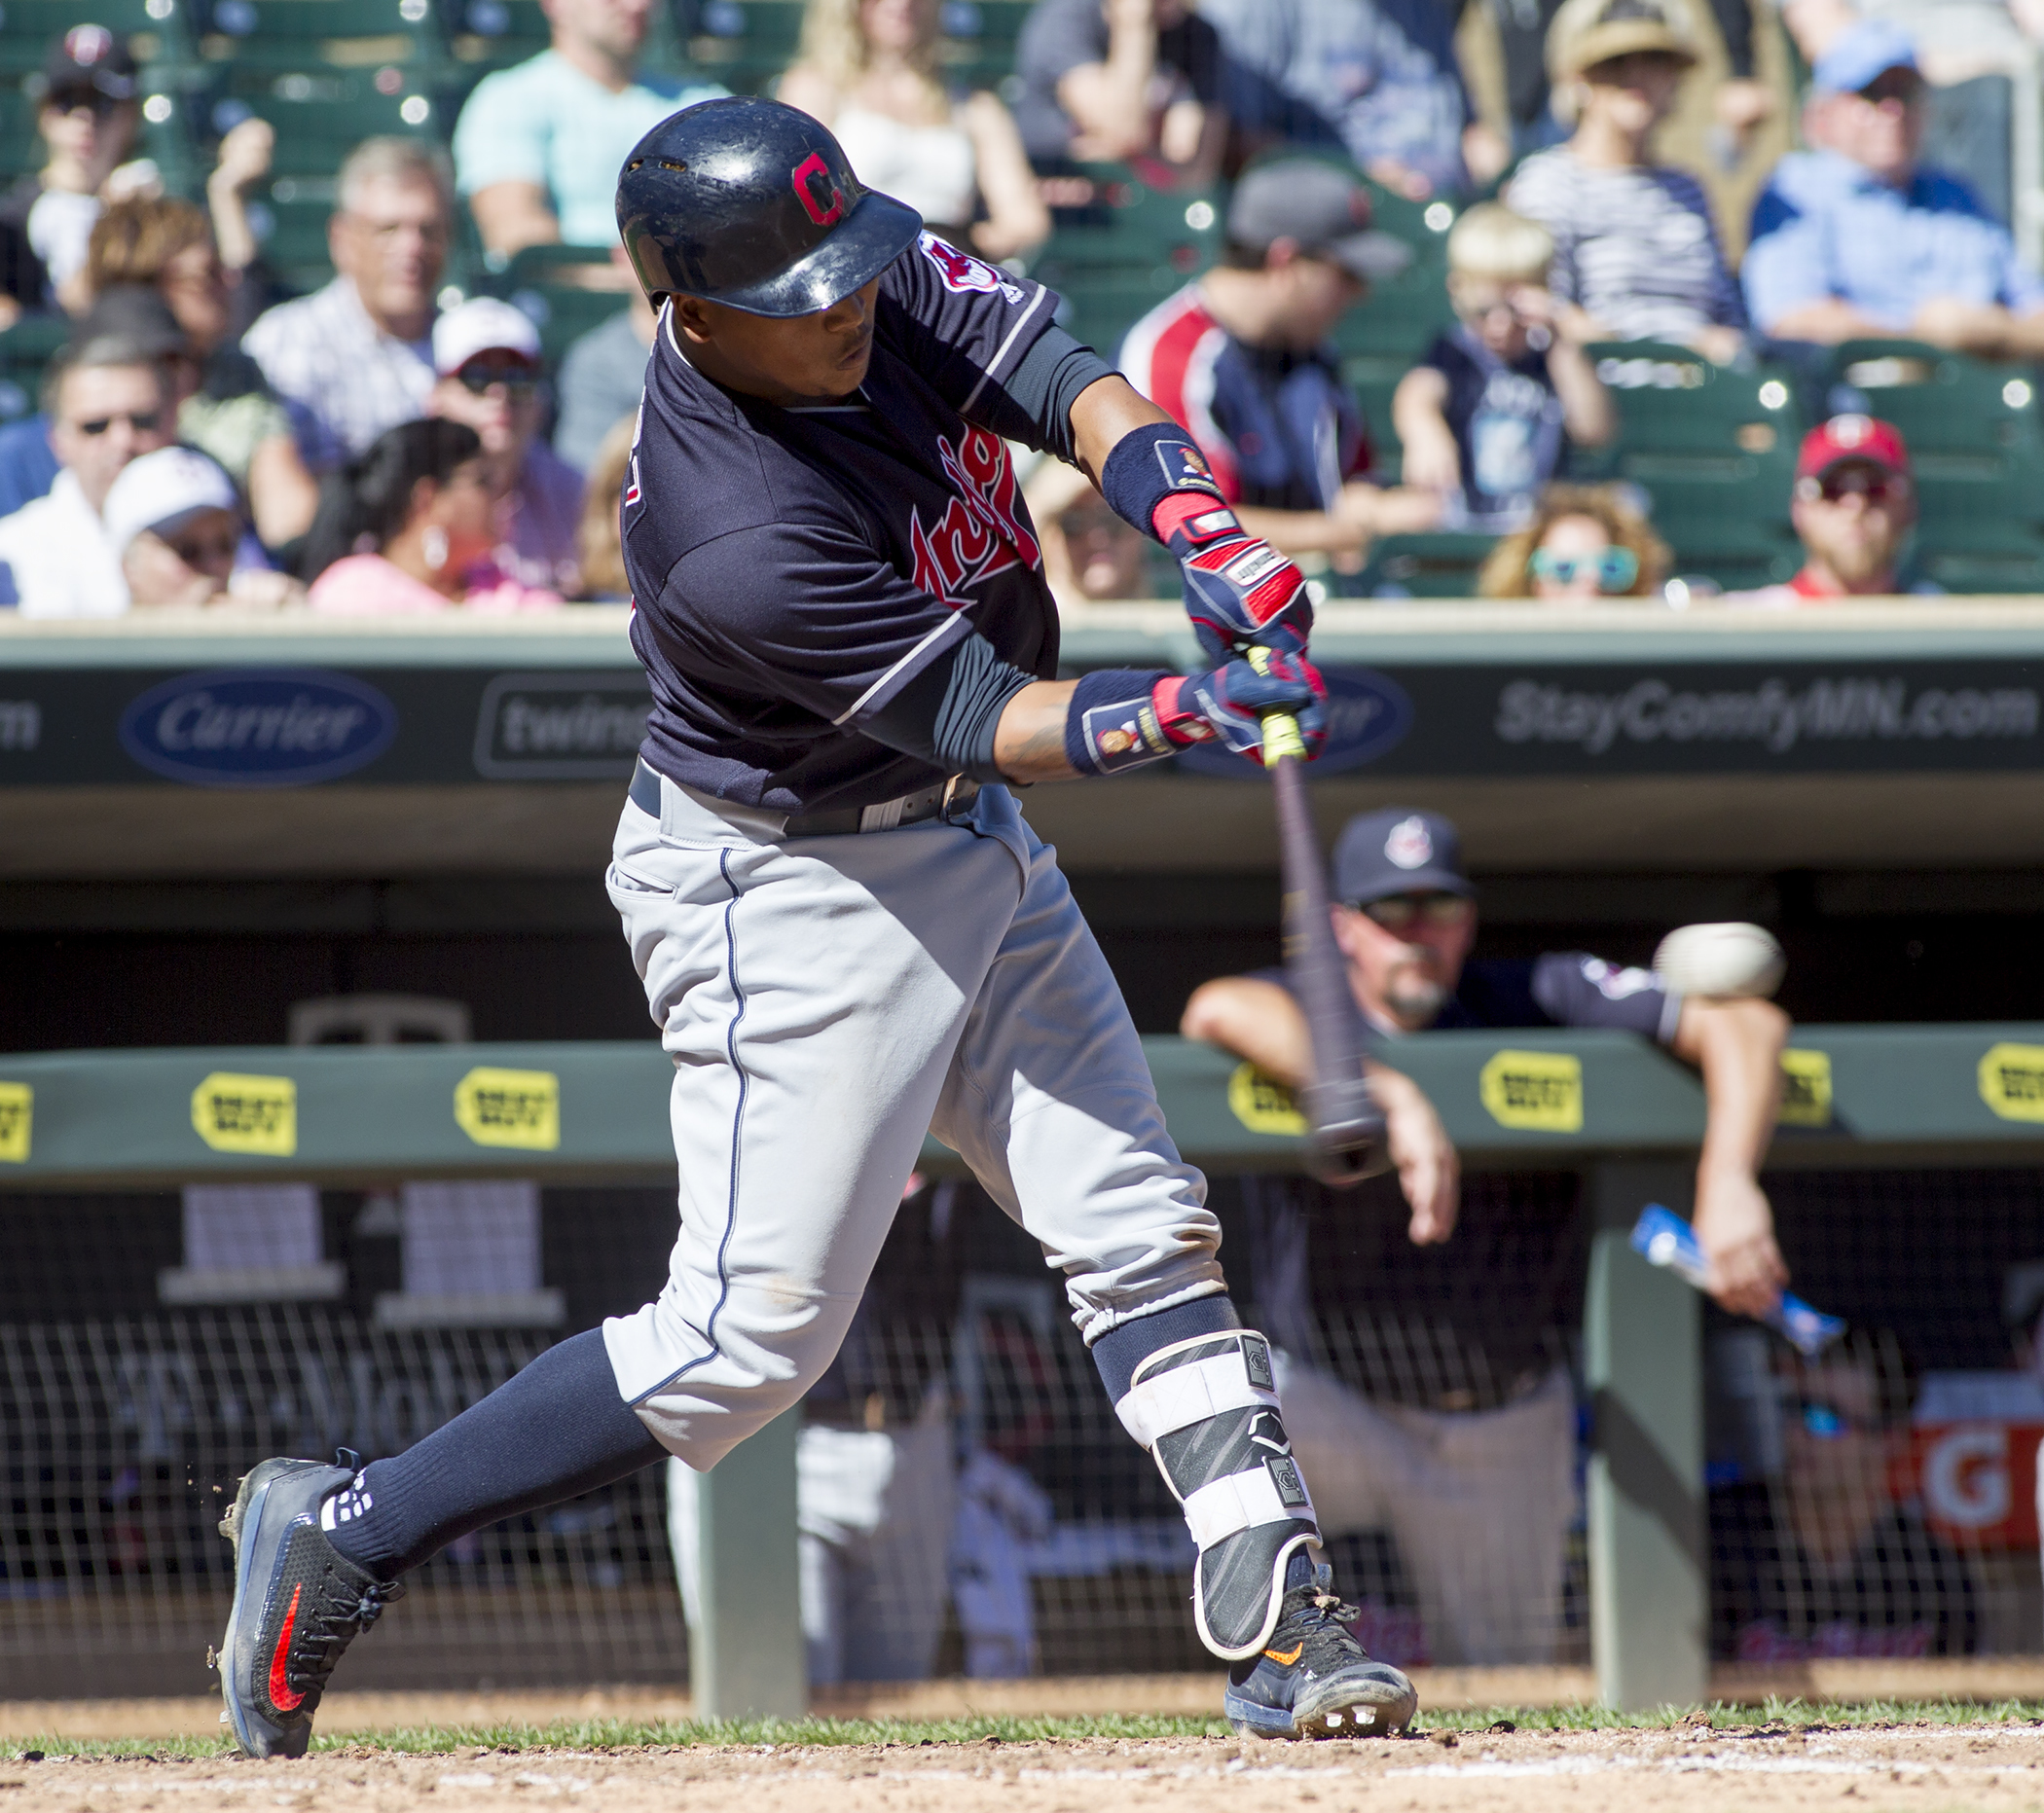 Cleveland Indians' Jose Ramirez (11) singles against the Minnesota Twins during the fourth inning of a baseball game, Sunday, Sept. 11, 2016, in Minneapolis. (AP Photo/Paul Battaglia)